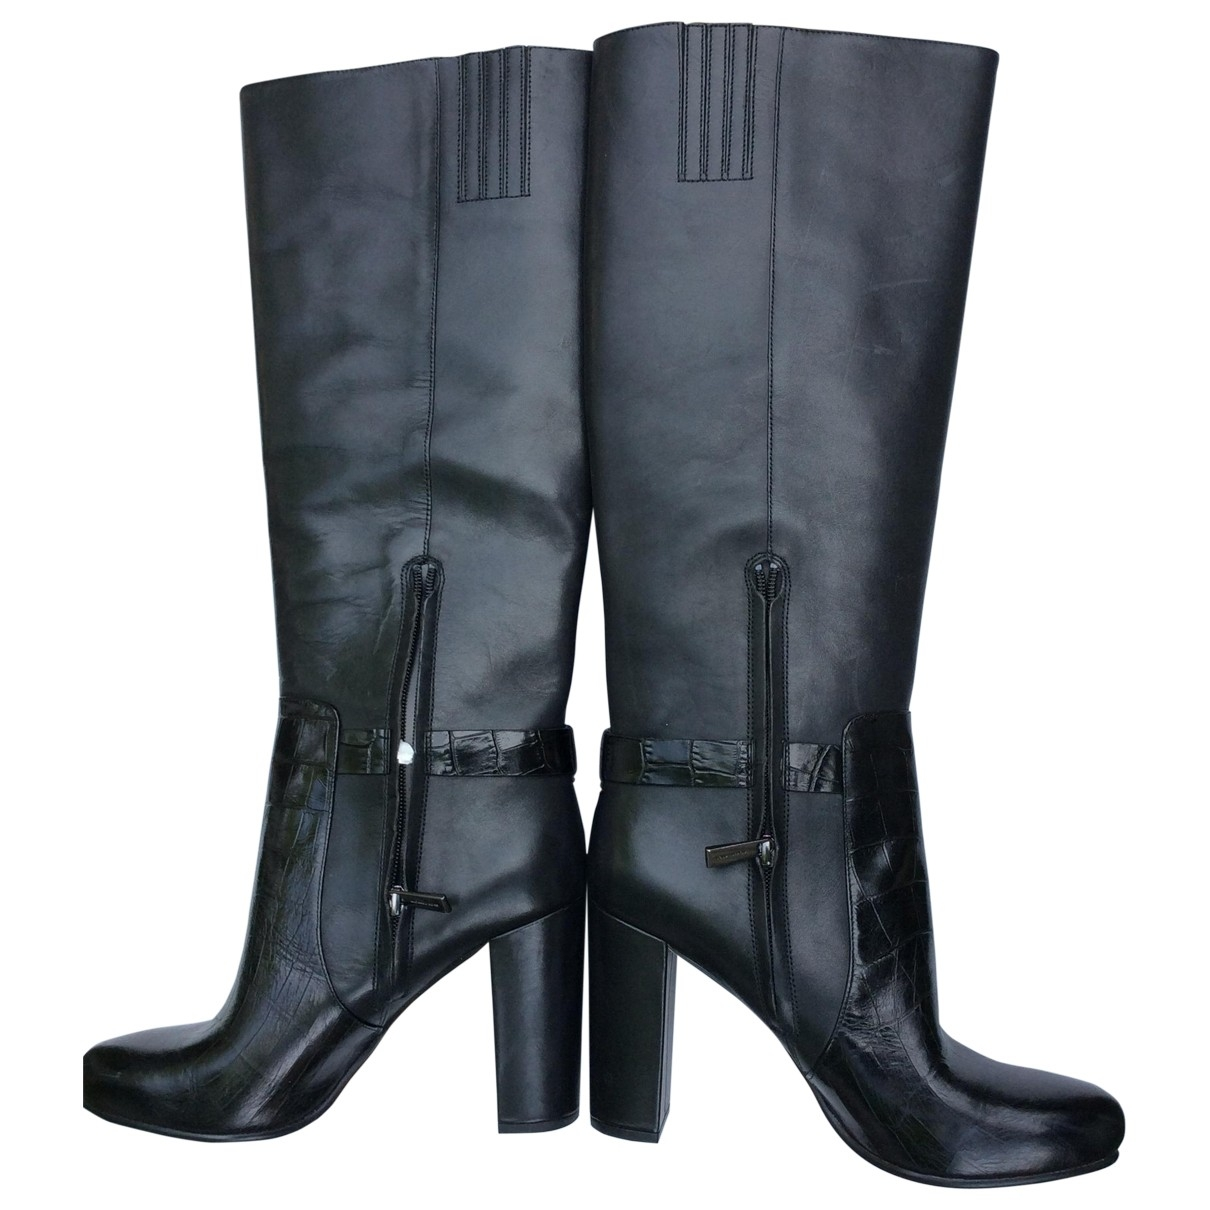 Michael Kors \N Black Leather Boots for Women 8.5 US